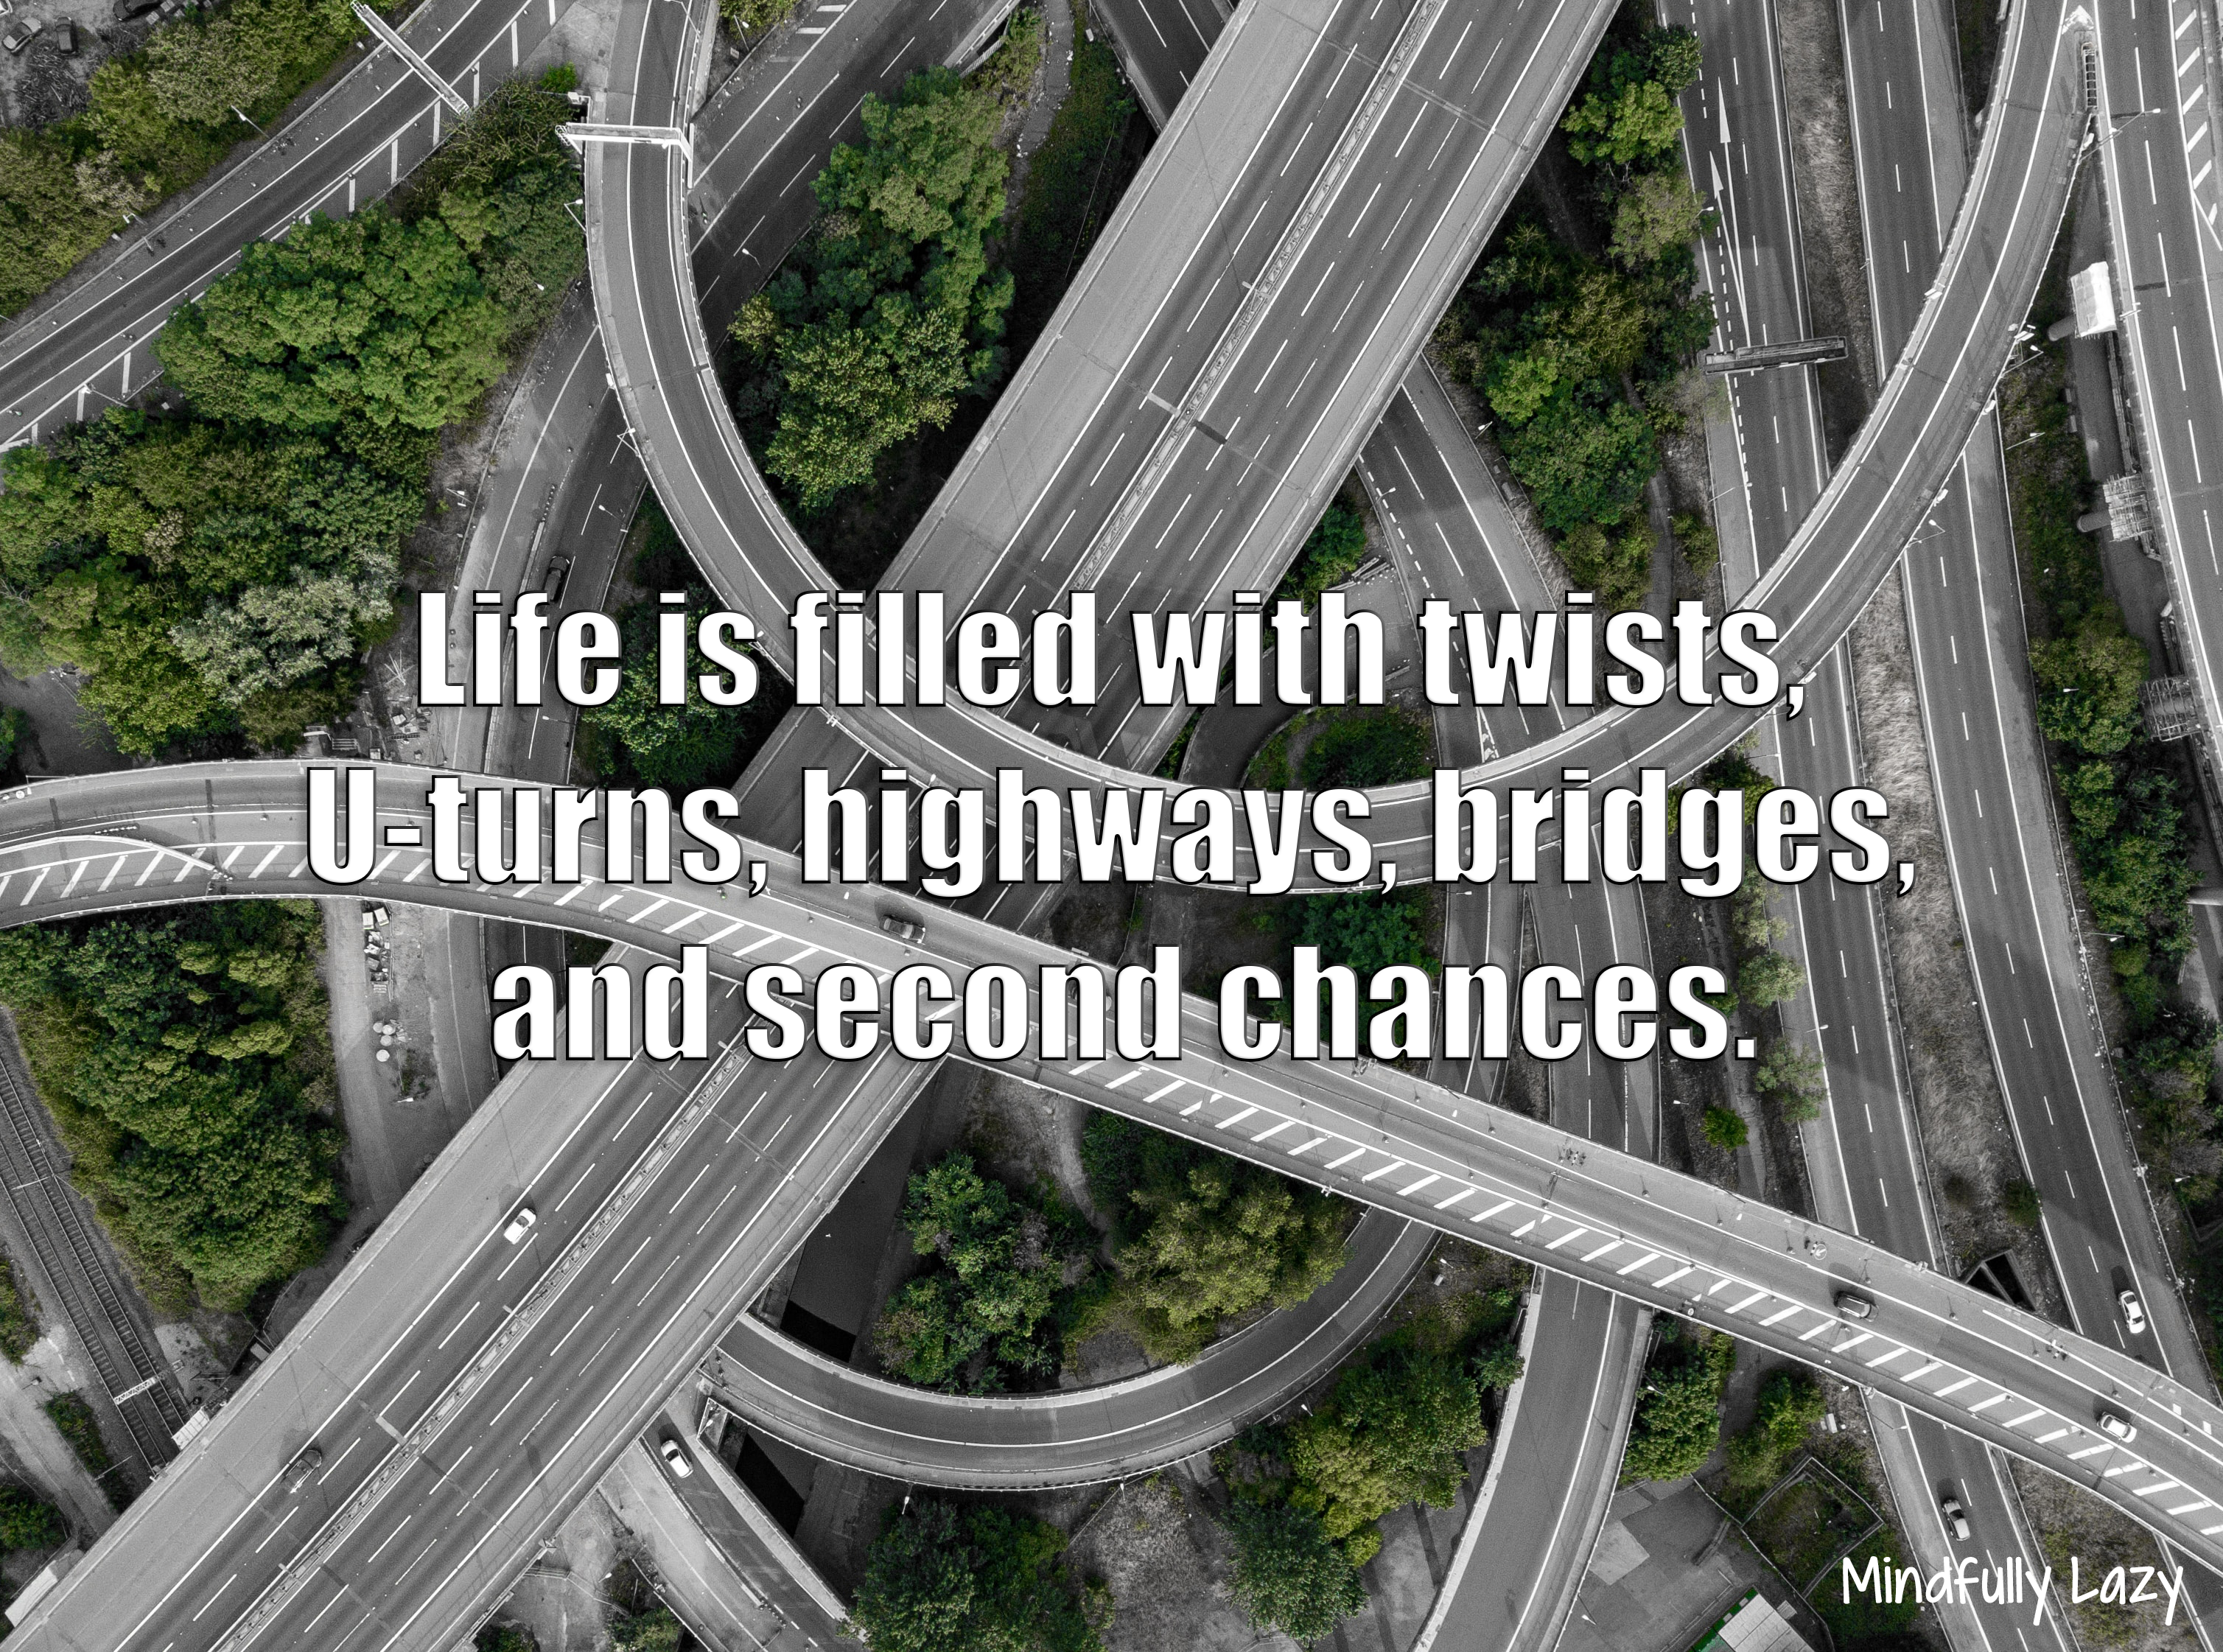 Life is filled with twists, U-turns, highways, bridges, and second chances.